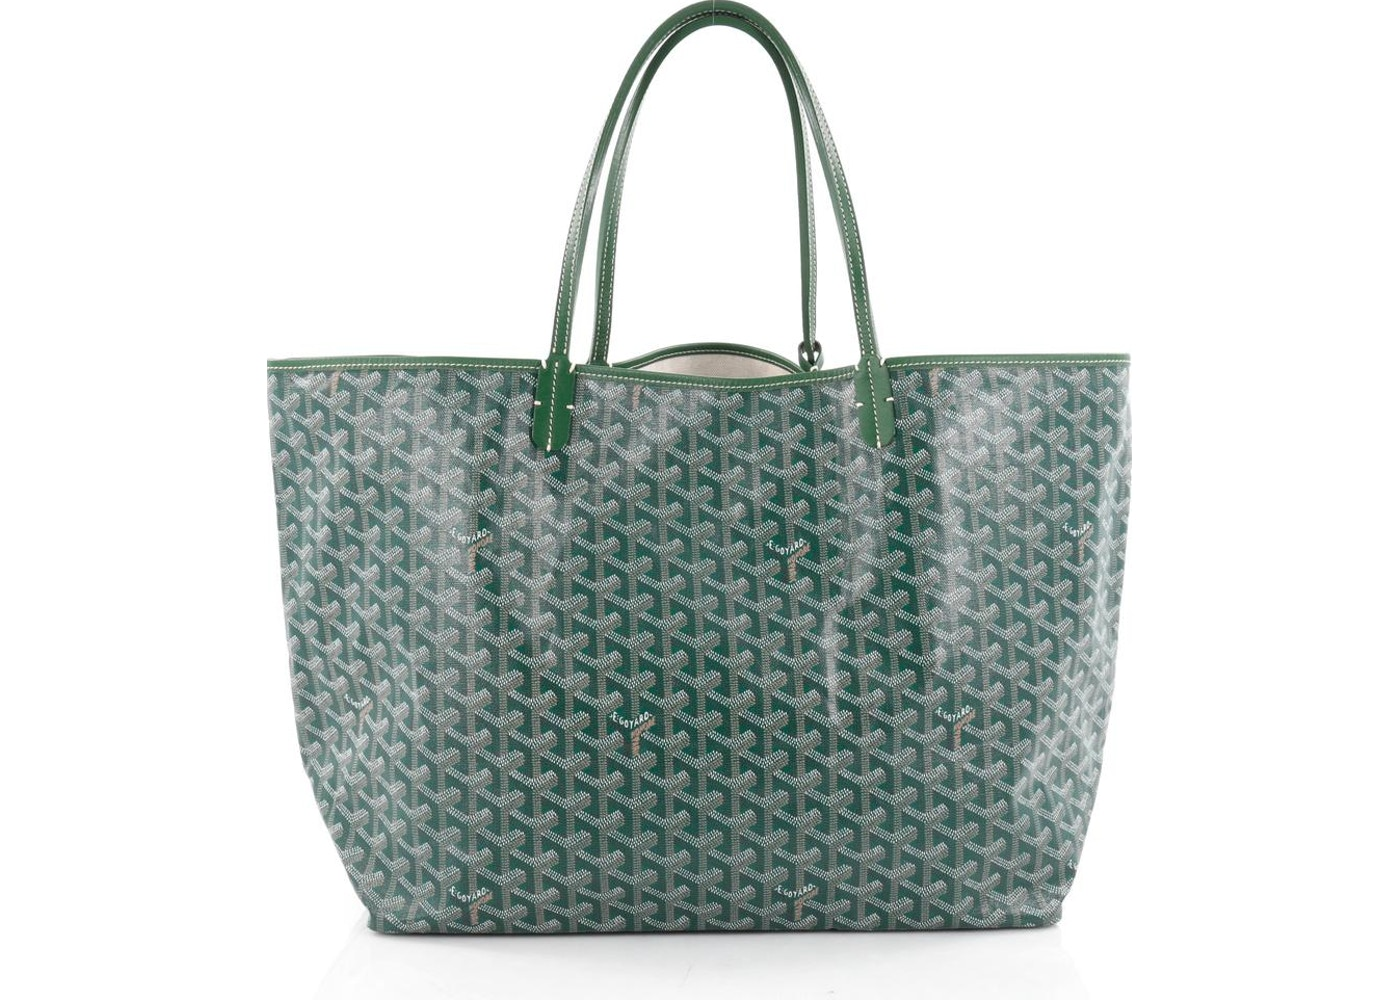 89a70a58655b The green Goyard chevron canvas is one that you can dress up or dress down  depending on the look you are going for. This tote is one that is highly  sought ...